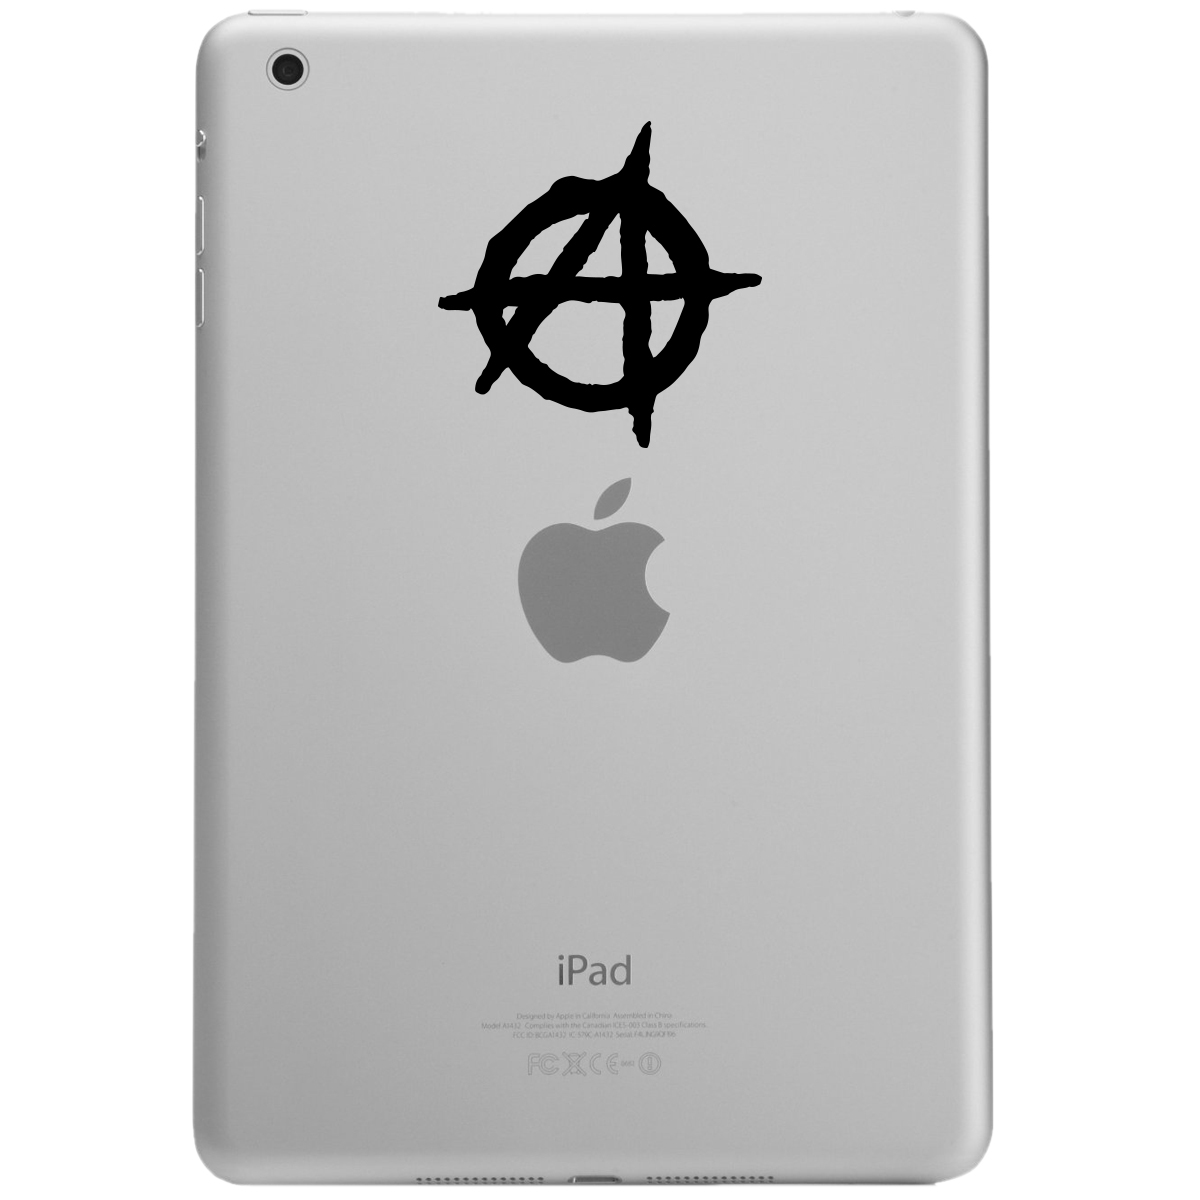 Anarchy Symbol Outline iPad Tablet Vinyl Sticker Decal